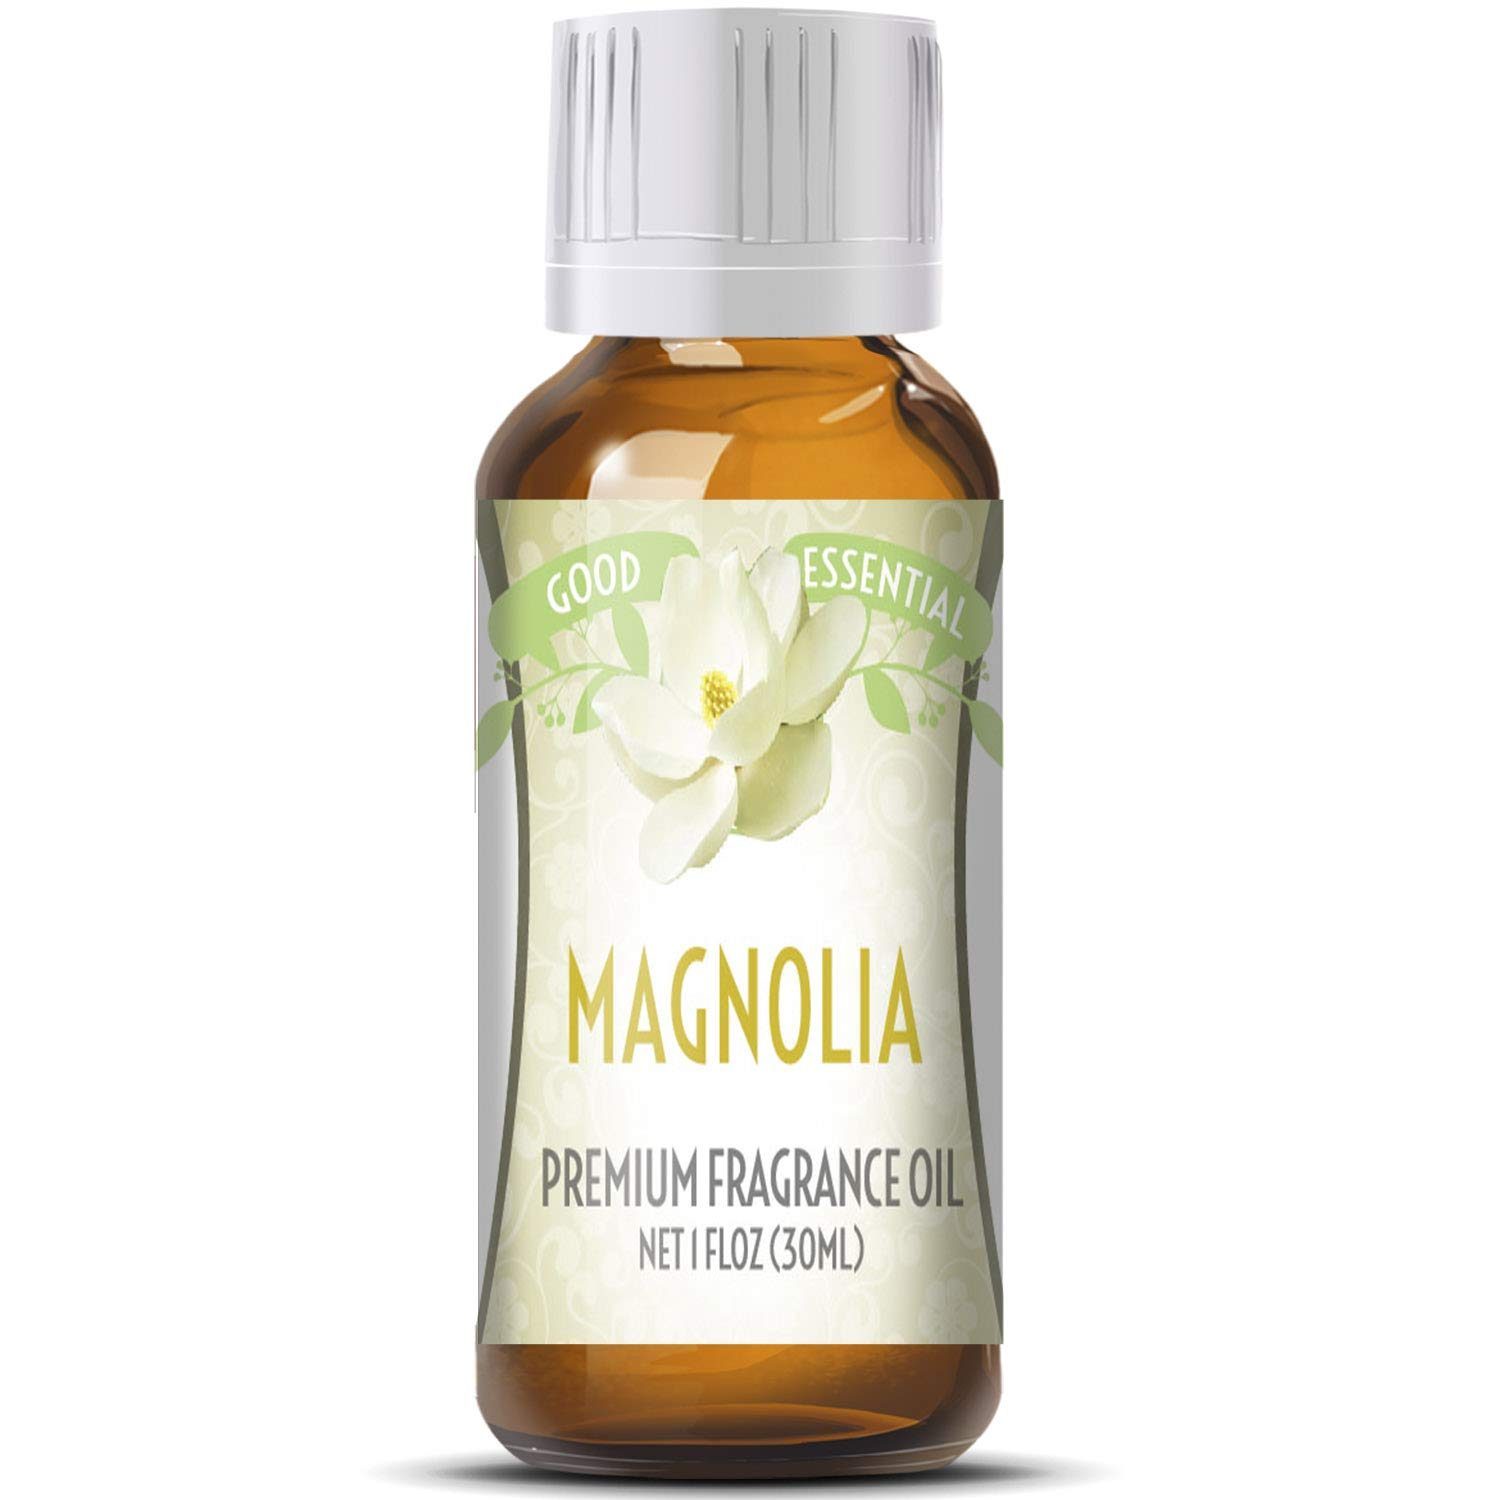 Magnolia Scented Oil by Good Essential (Huge 1oz Bottle - Premium Grade Fragrance Oil) - Perfect for Aromatherapy, Soaps, Candles, Slime, Lotions, and More!